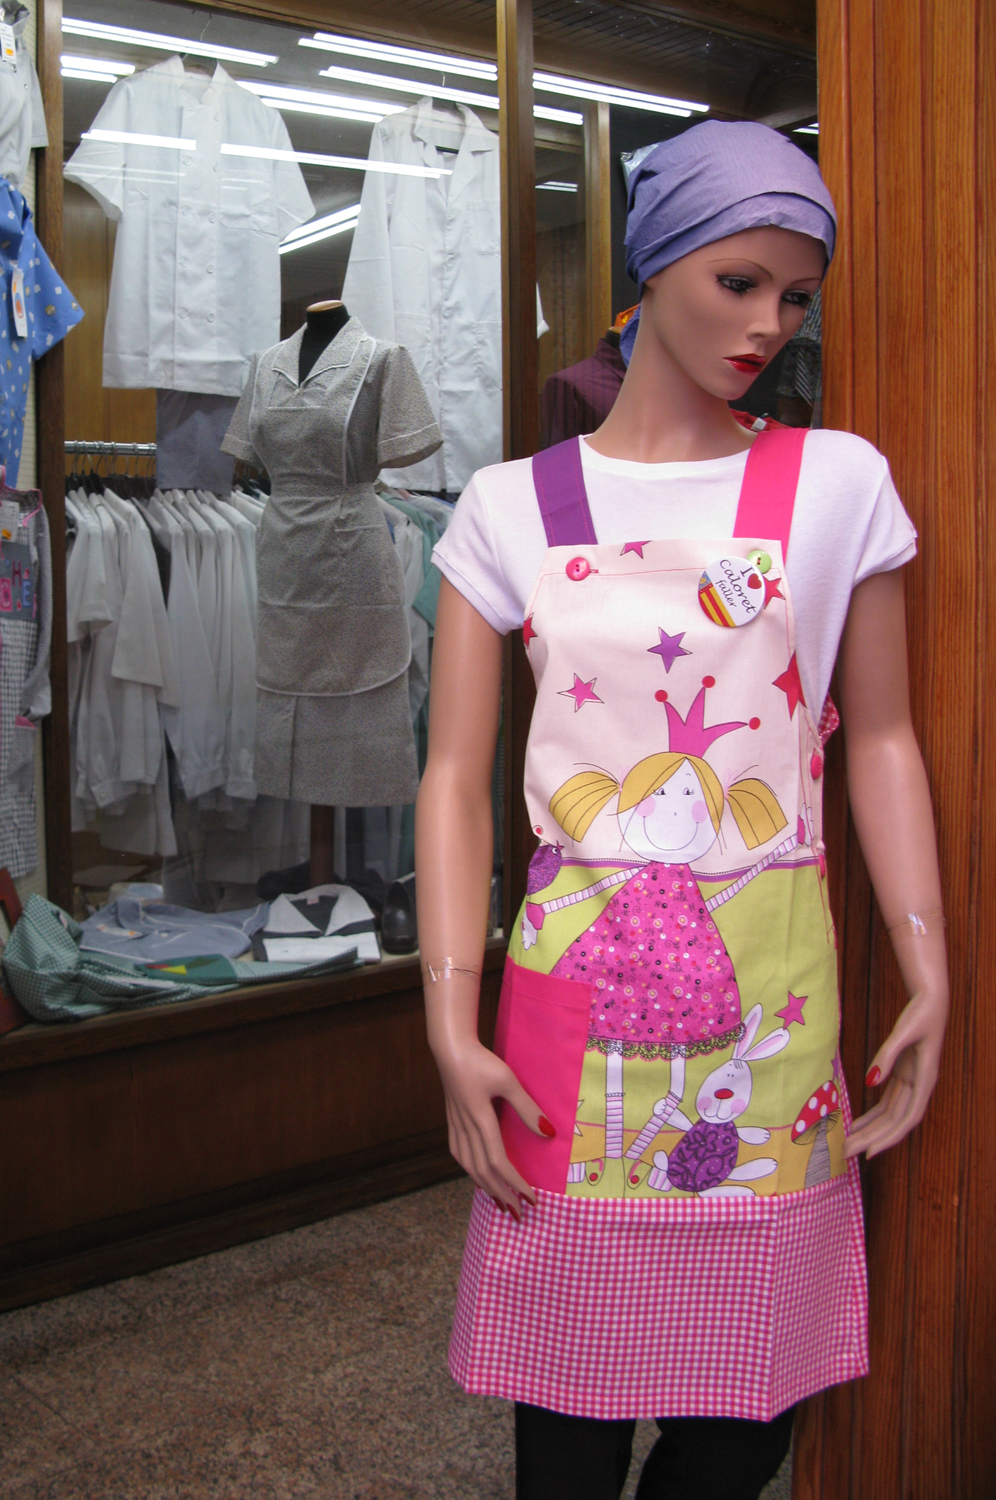 cheryl_powers_apron22.JPG